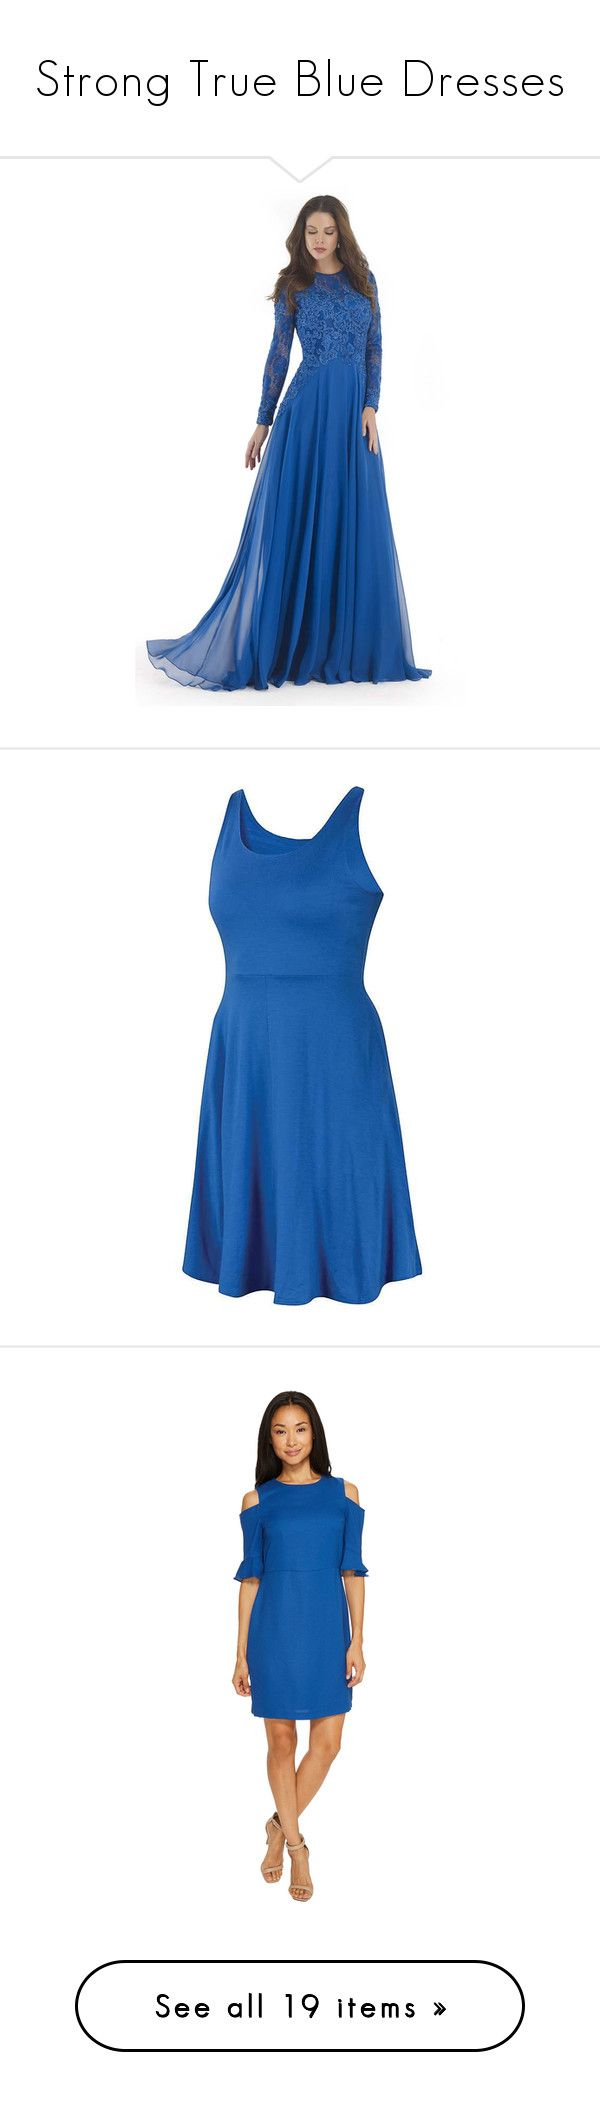 """""""Strong True Blue Dresses"""" by tegan-b-riley on Polyvore featuring dresses, gowns, formal dresses, teal, long-sleeve lace dress, long sleeve gowns, blue lace dress, long evening dresses, long sleeve formal gowns and lazuli"""